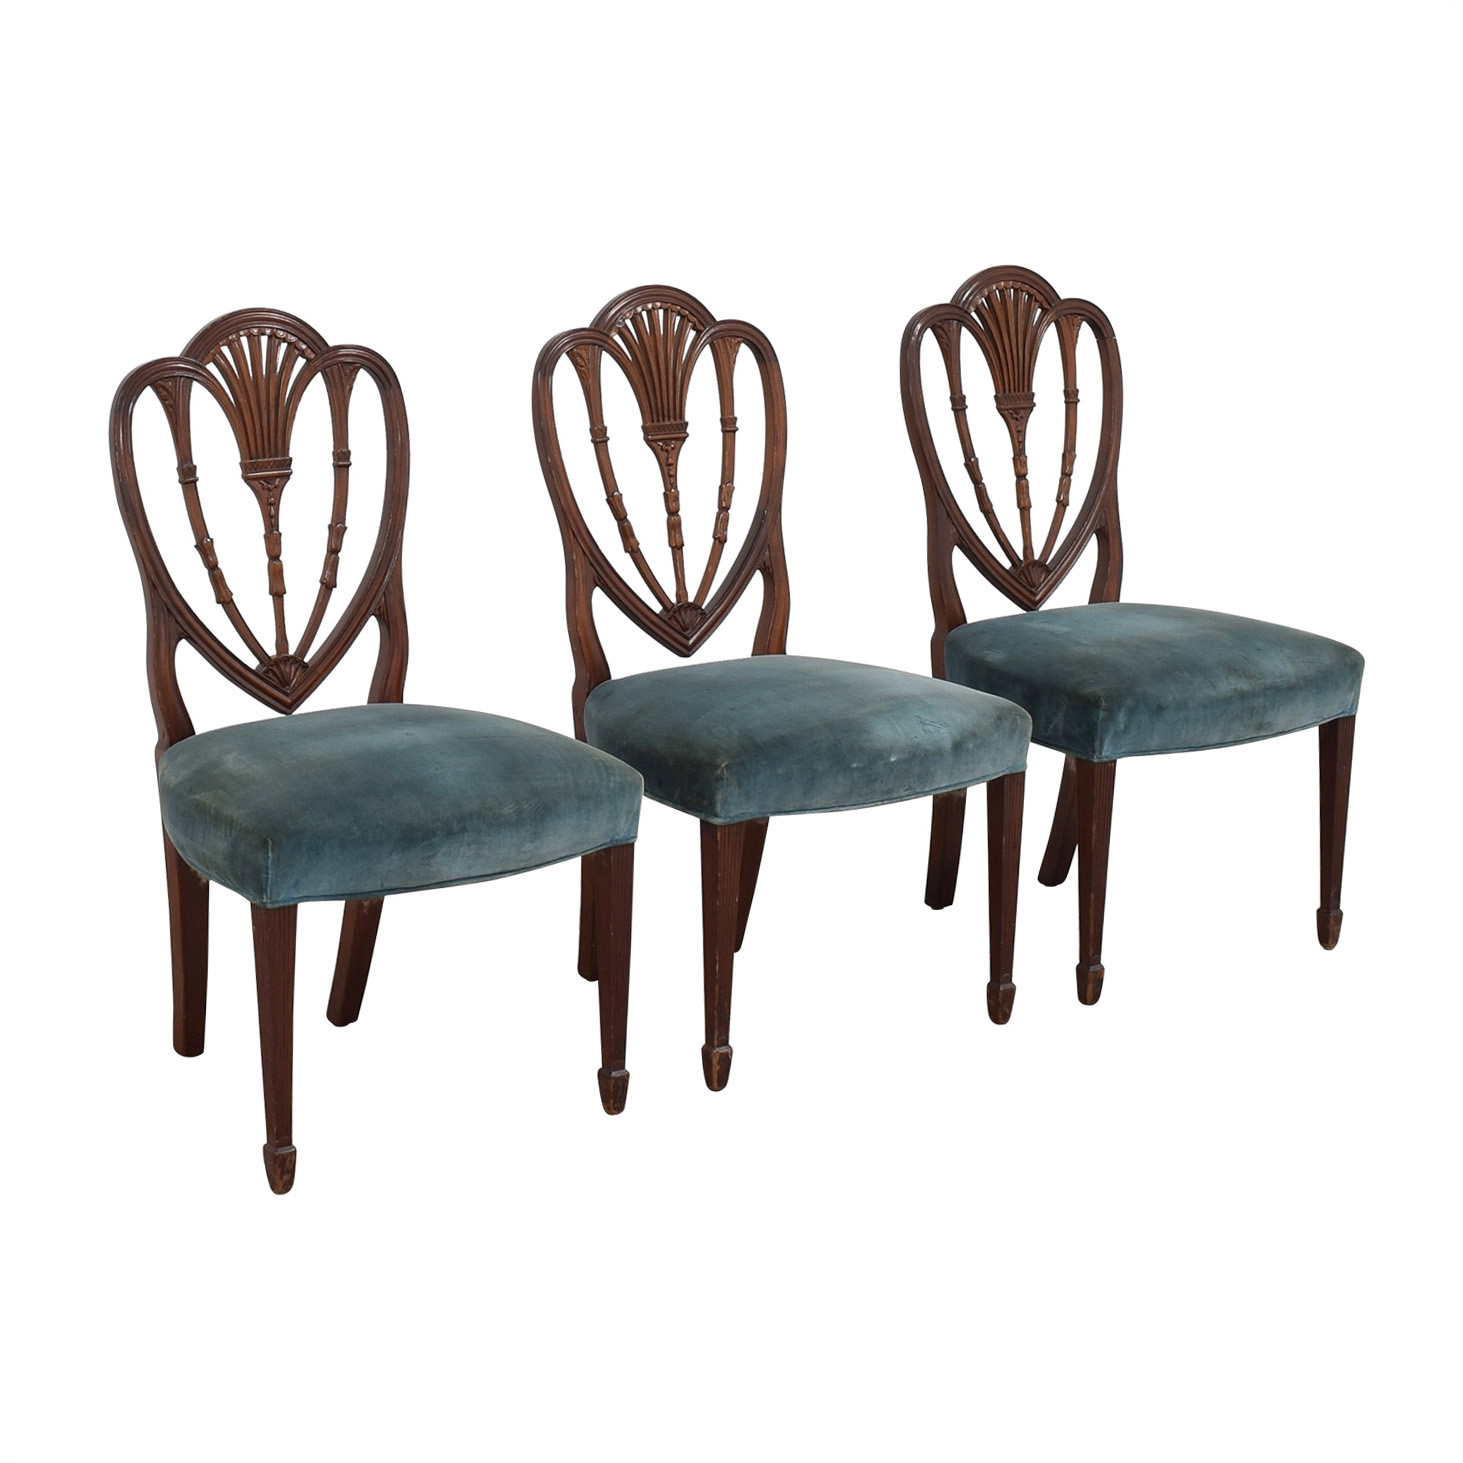 Vintage Decorative Dining Chairs dimensions